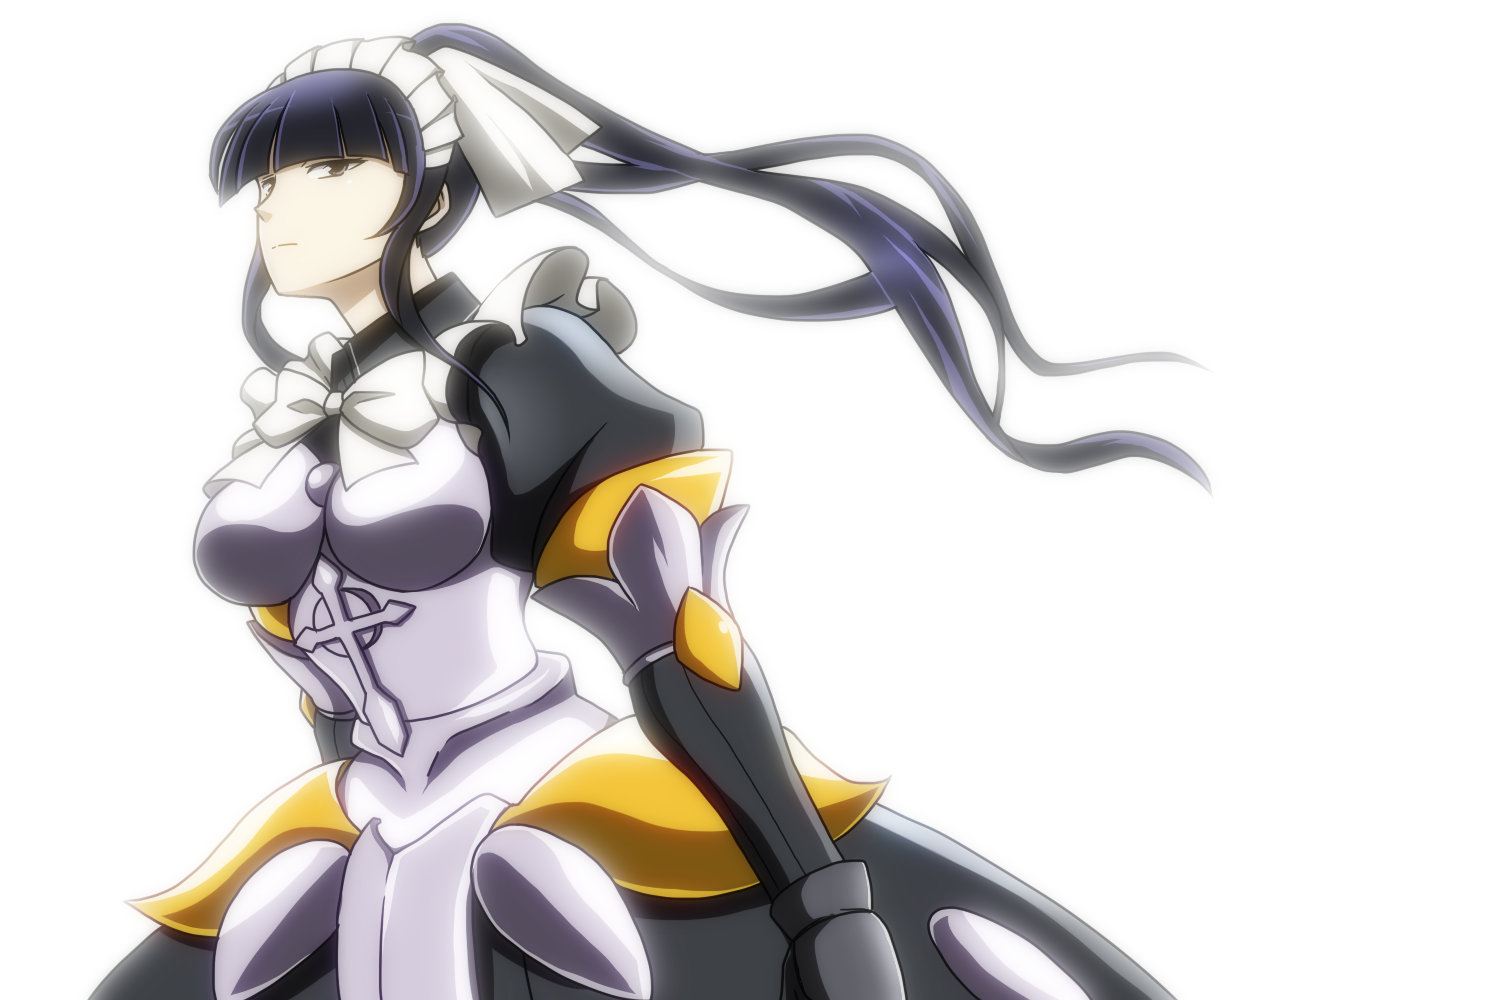 Anime Overlord Narberal Gamma Overlord Wallpaper Anime